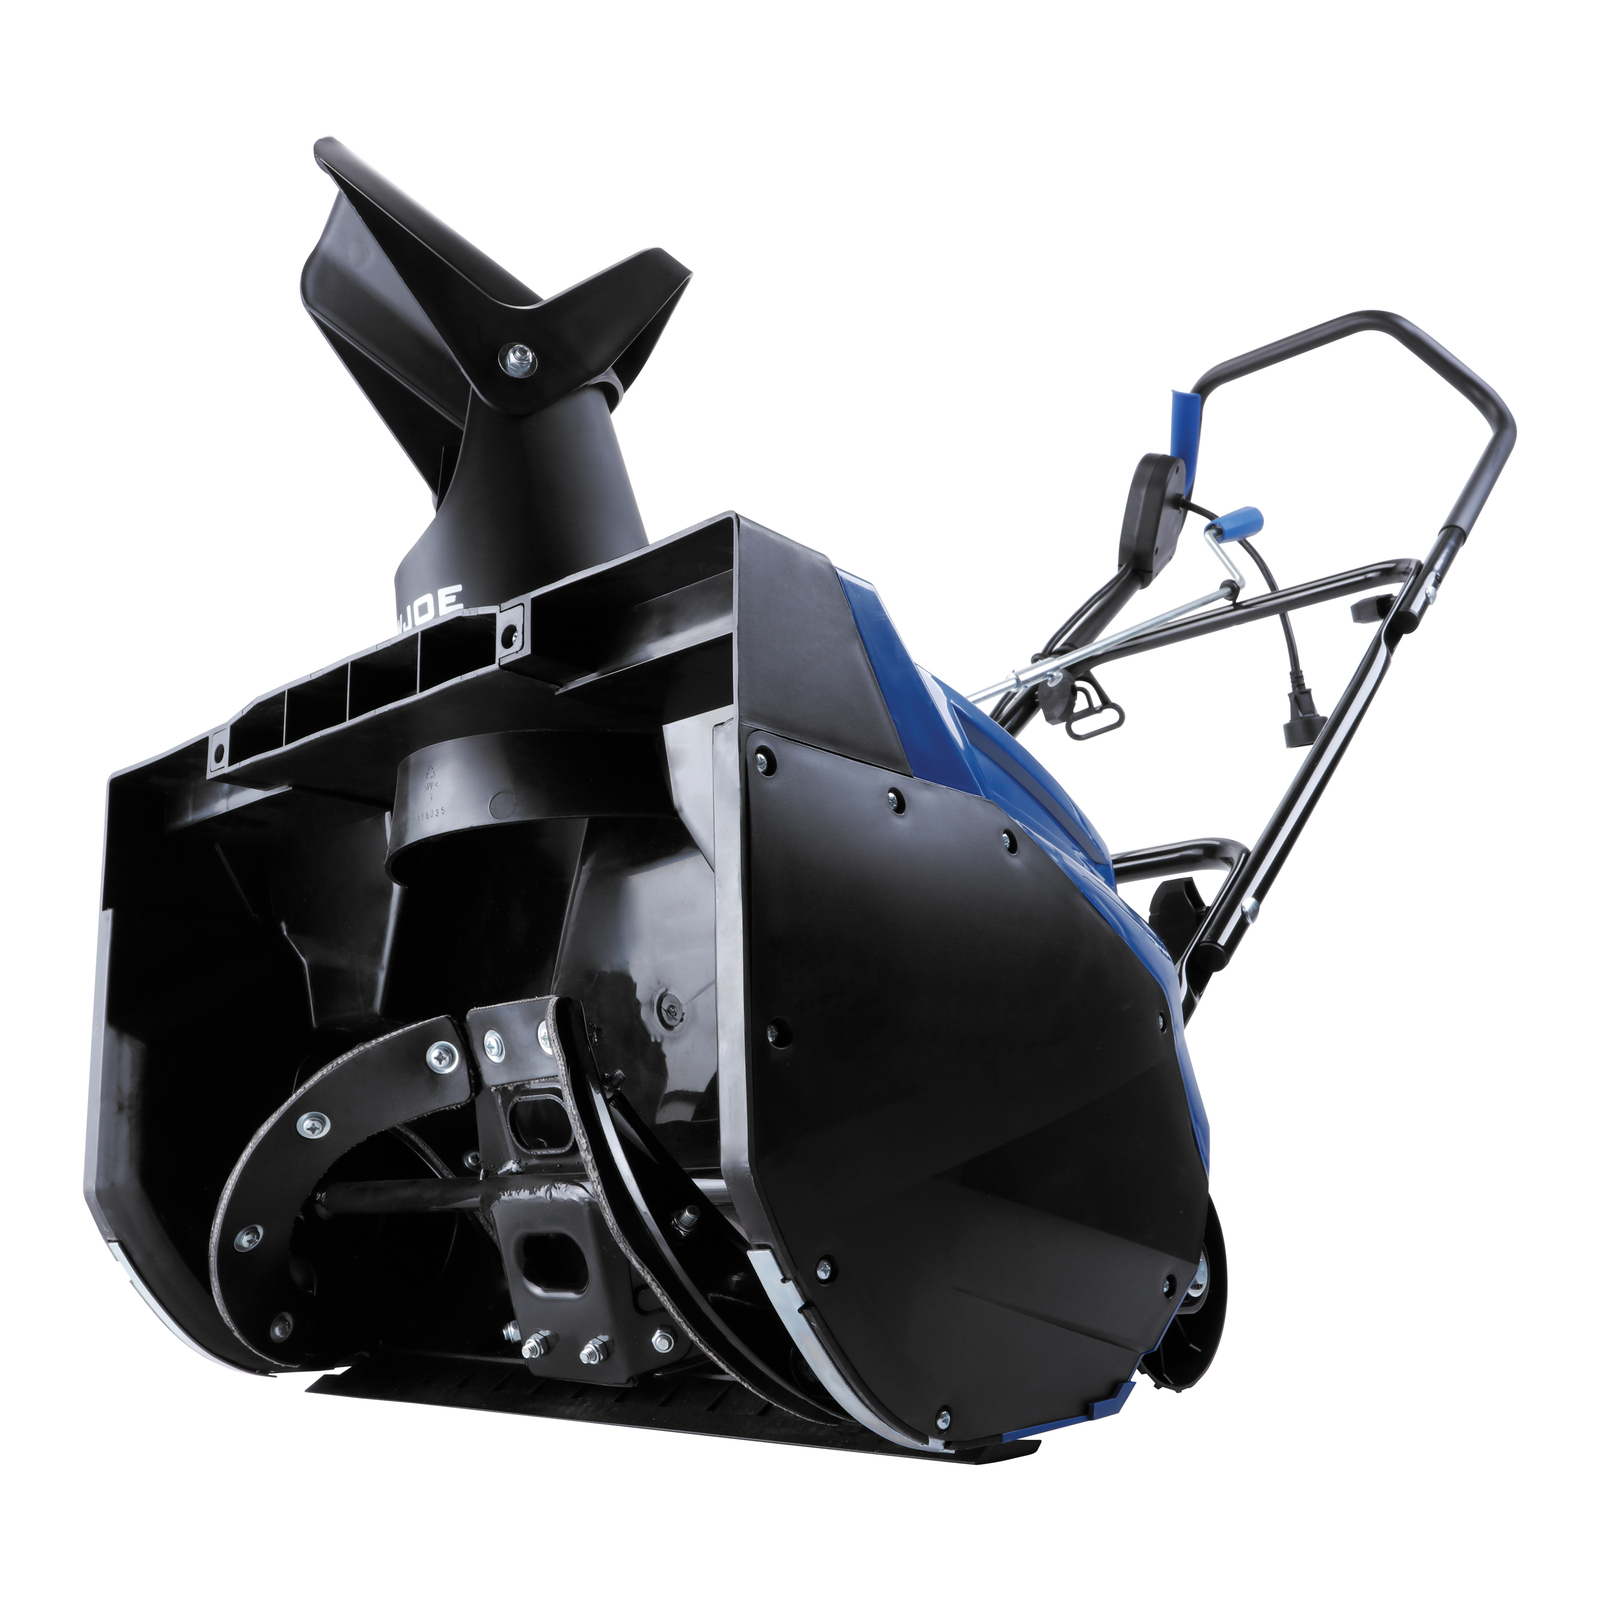 Primary image for Snow Joe SJ620 Electric Single Stage Snow Thrower | 18-Inch | 13.5 Amp Motor